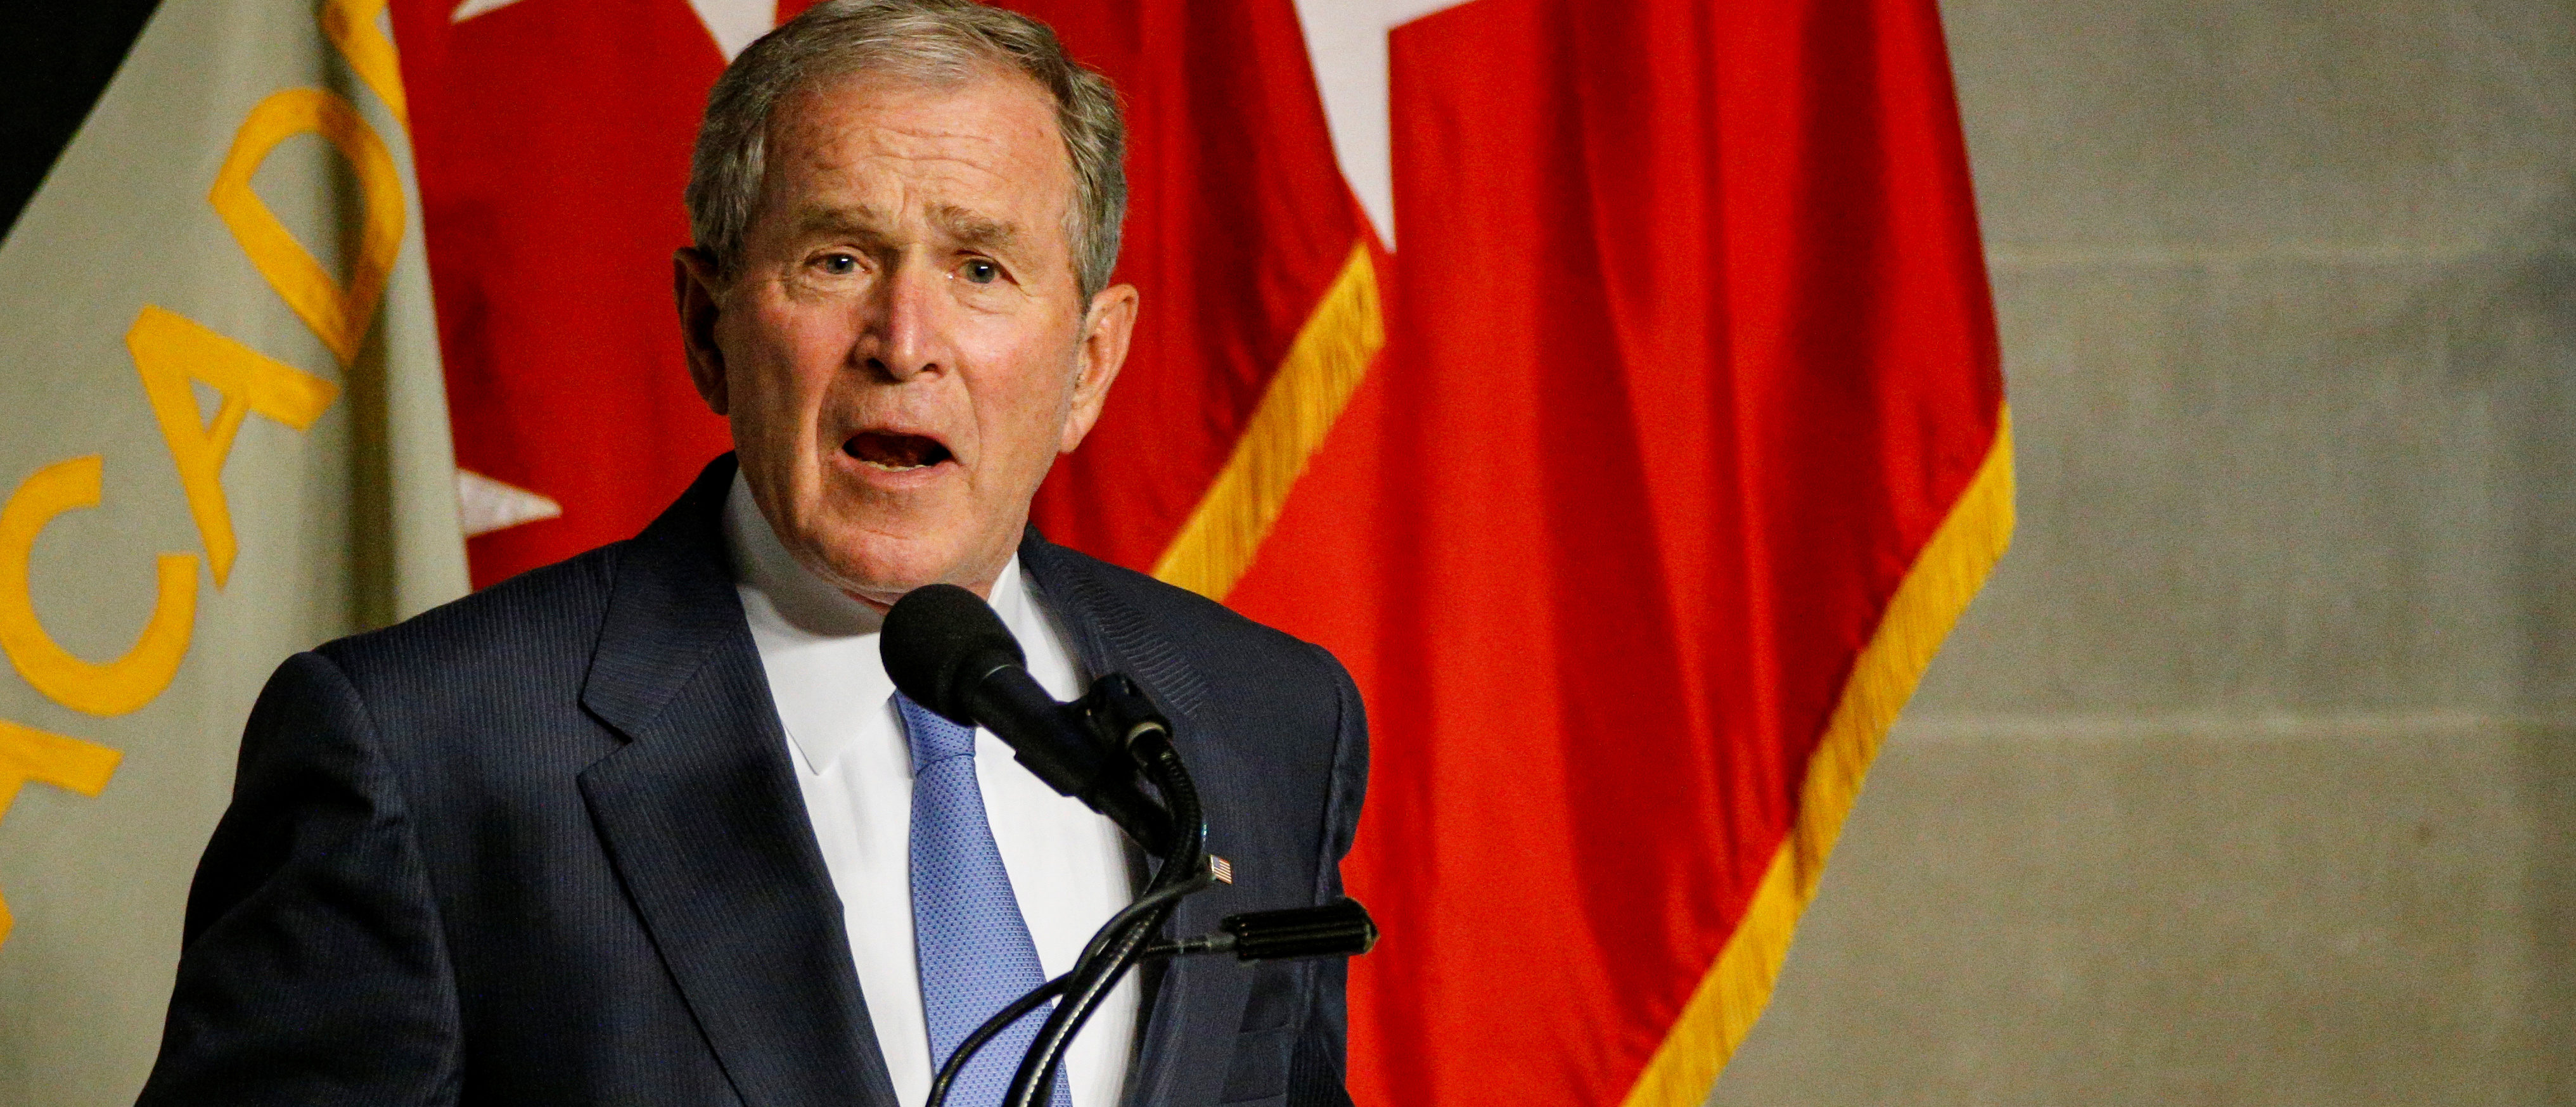 Former U.S. President George W. Bush speaks after being honored with the Sylvanus Thayer Award at the United States Military Academy in West Point, New York, October 19, 2017. REUTERS/Brendan McDermid